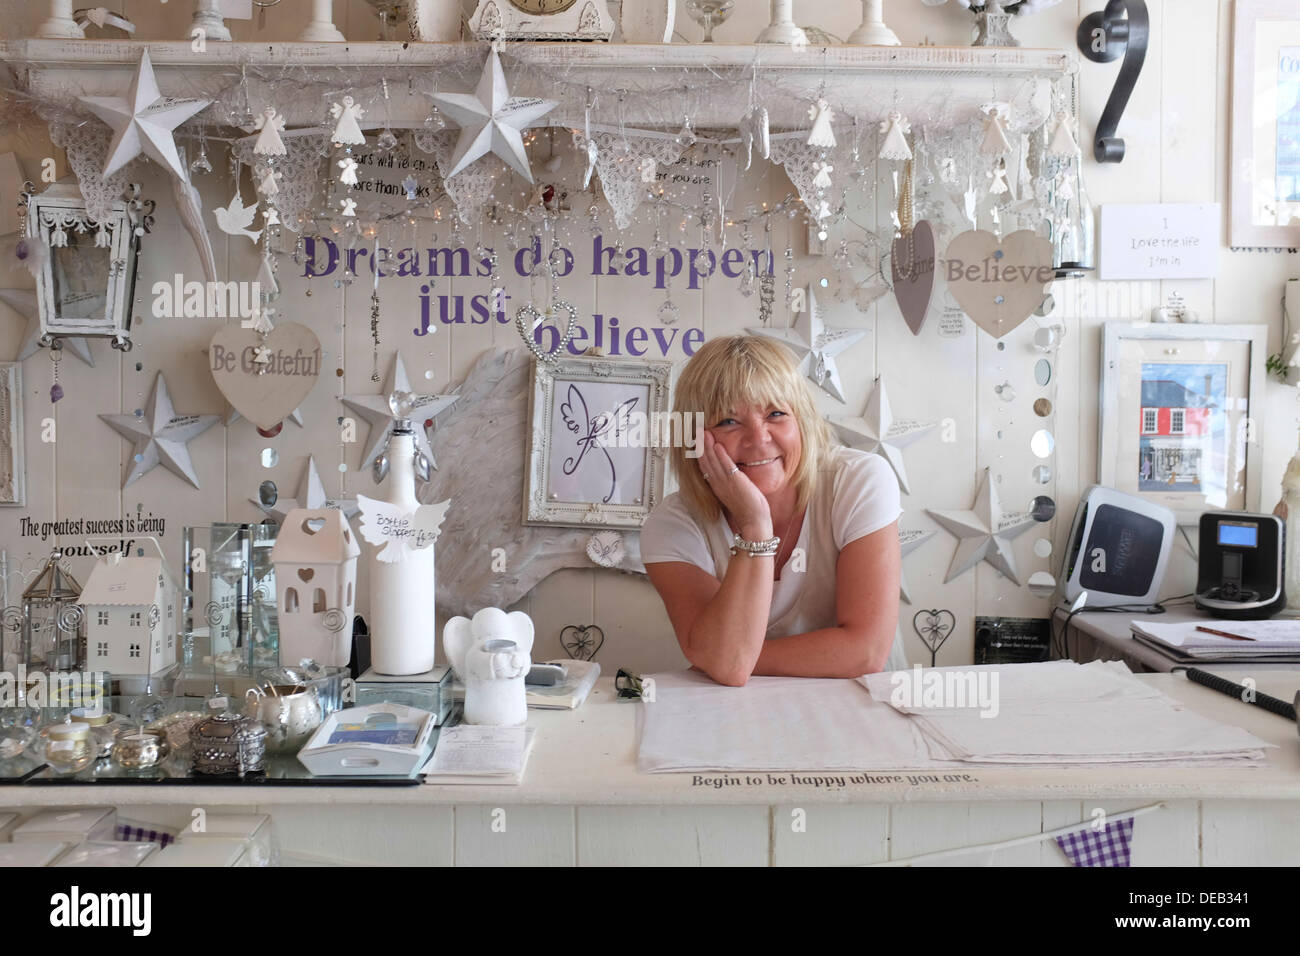 Interior homeware design - Happy Smiling Middle Aged Woman Self Employed Owner Of A Small Interior Design And Homeware Shop